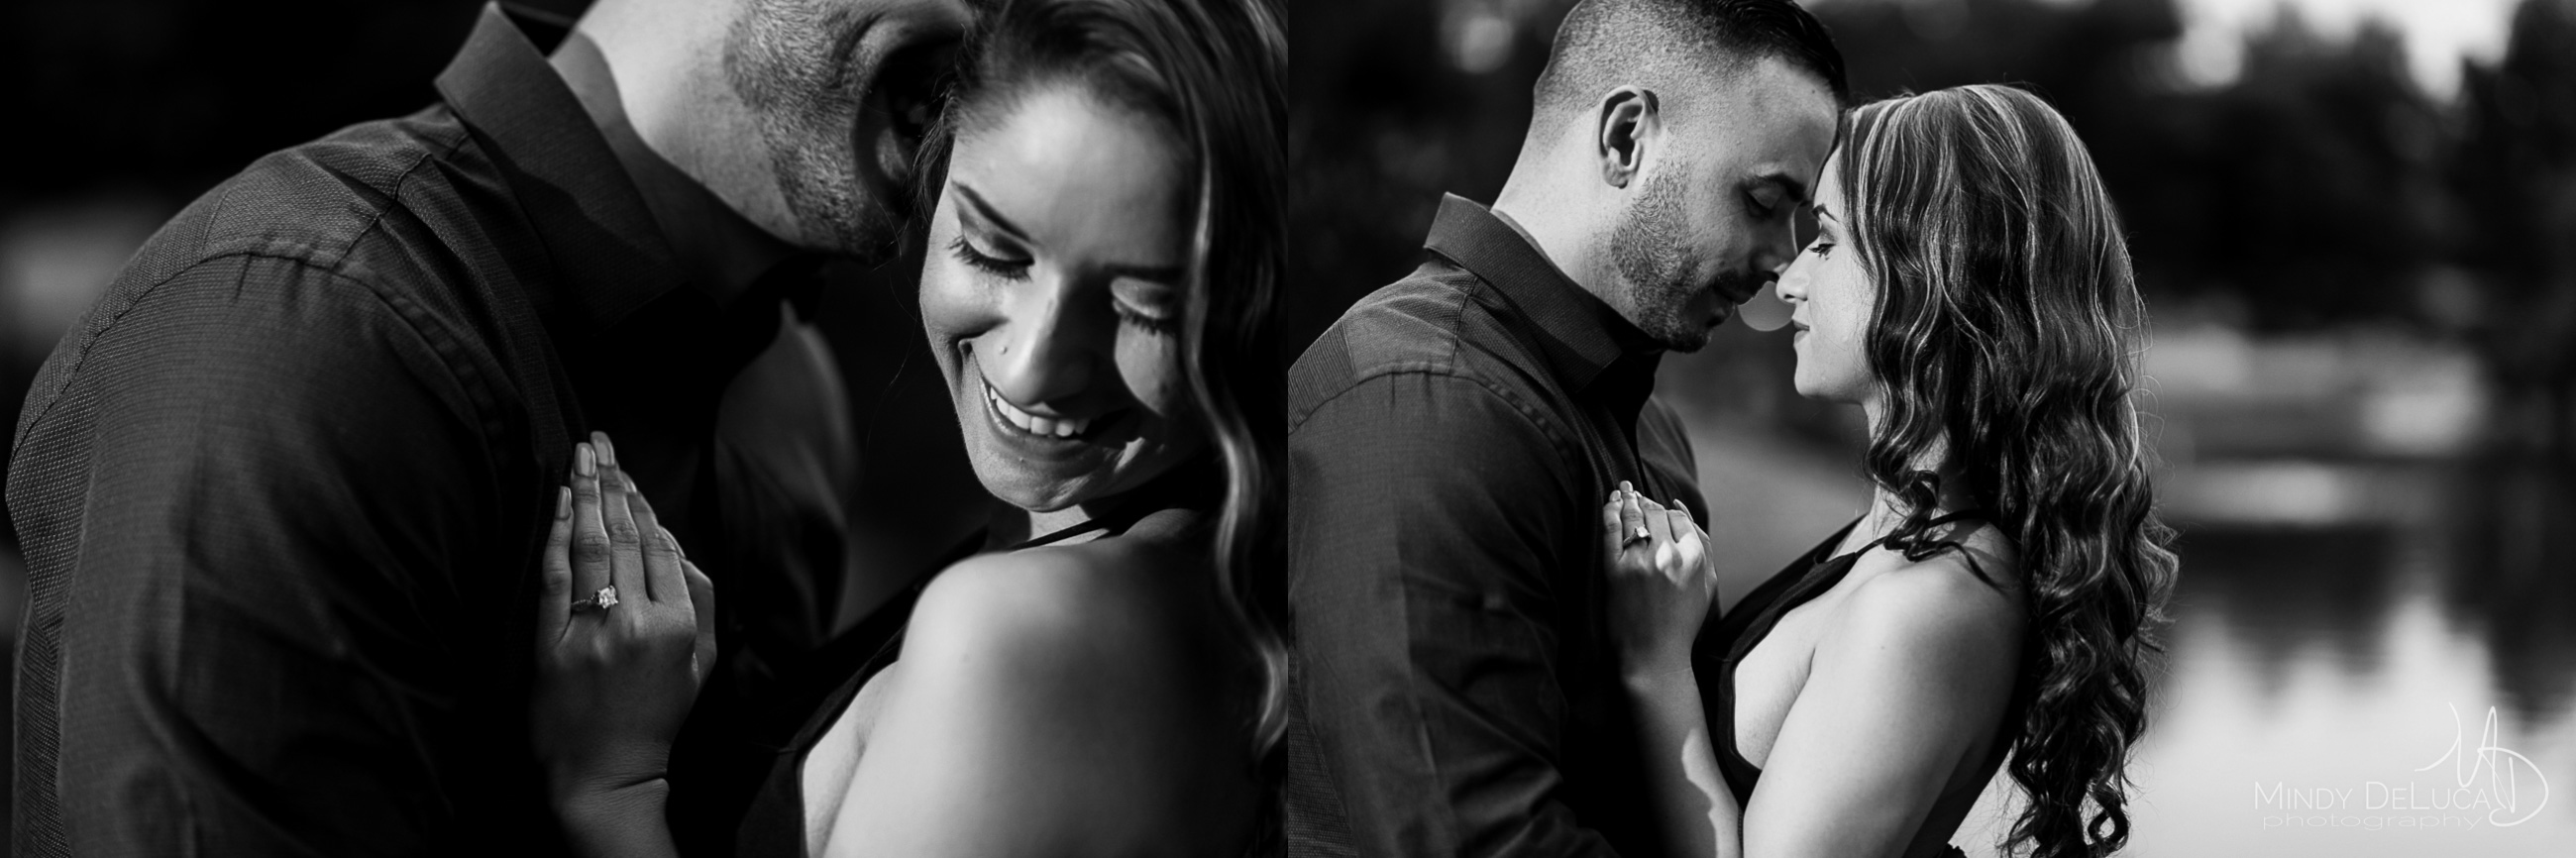 Romantic black & white engagement photos